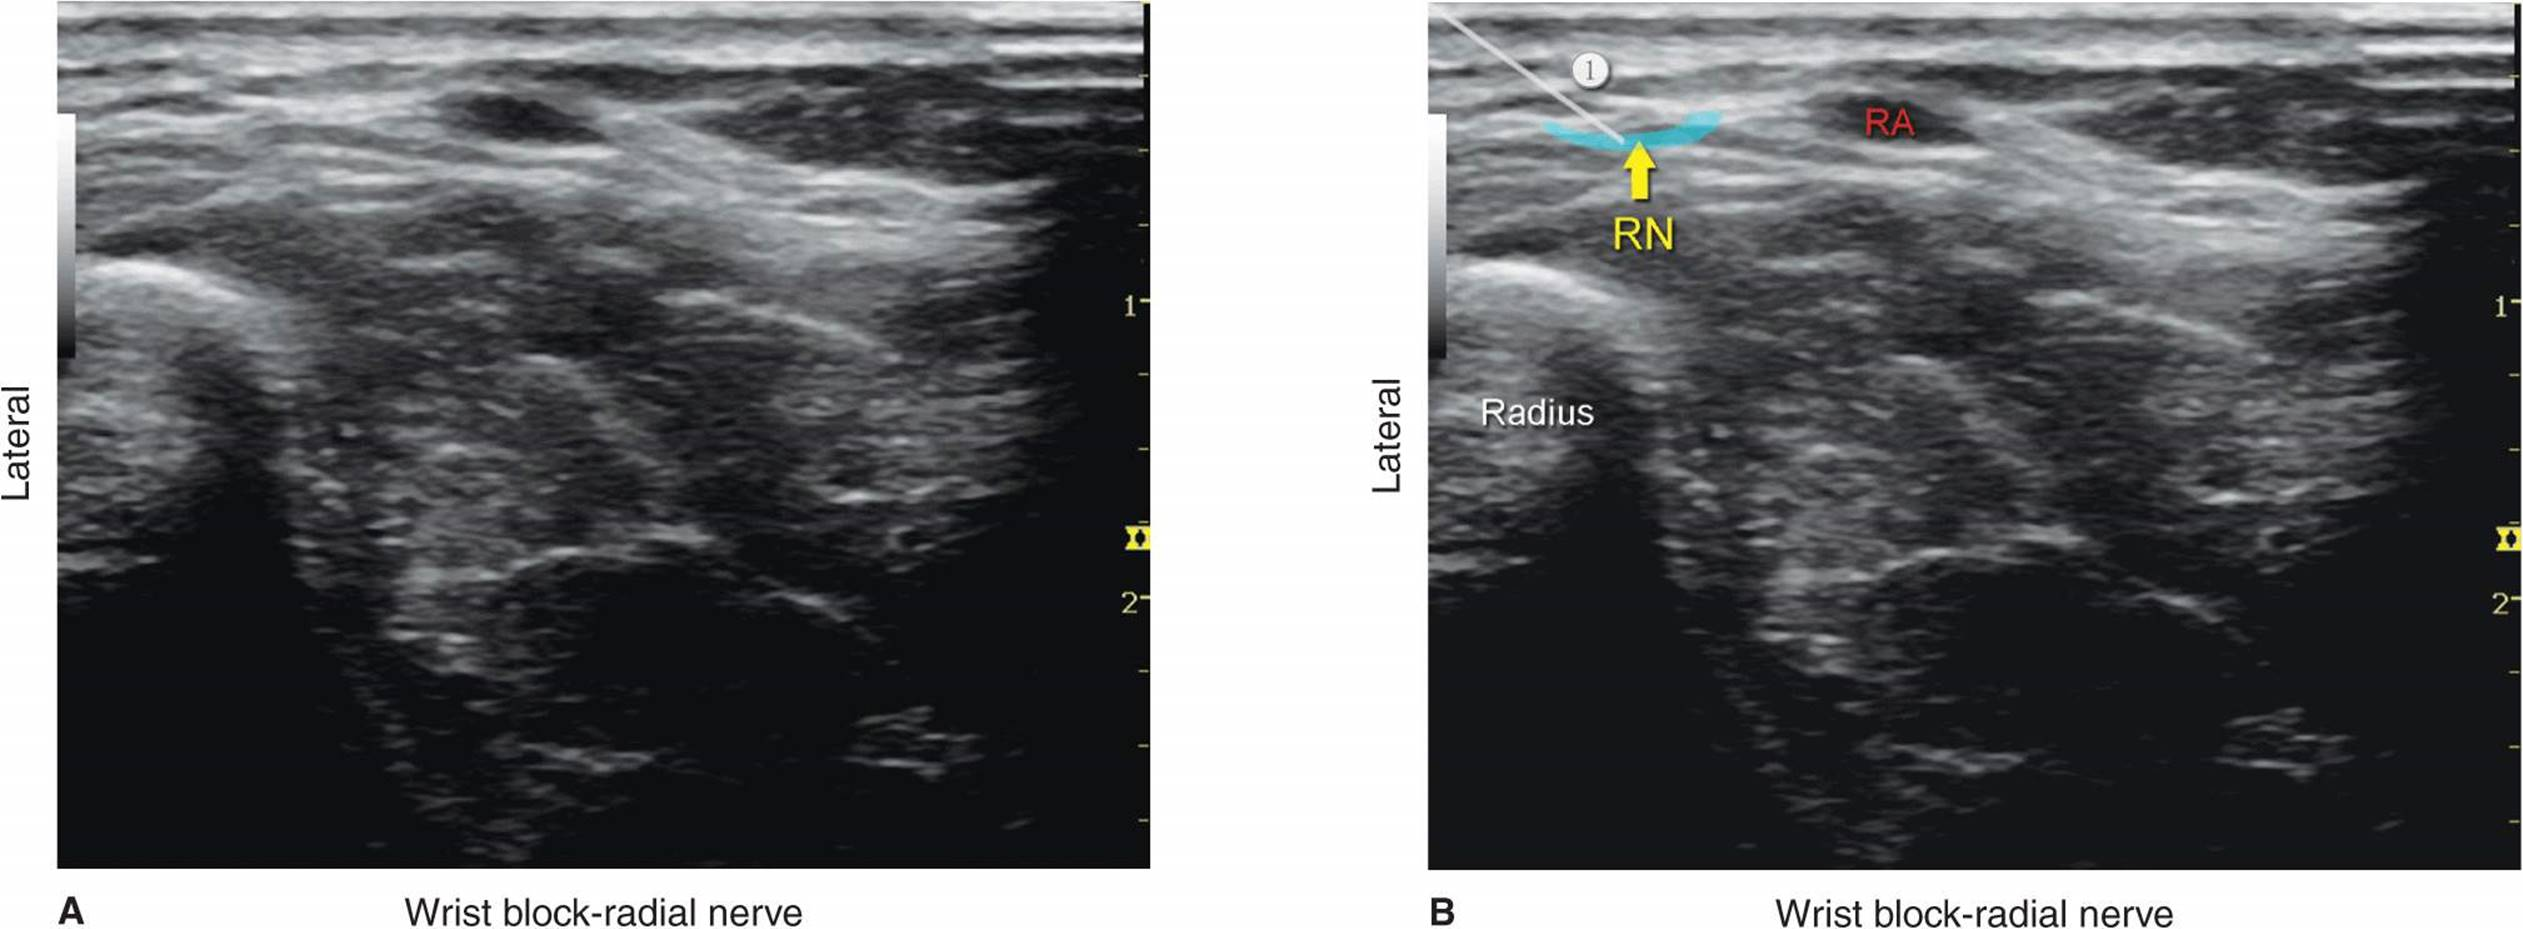 ultrasound guided radial nerve block